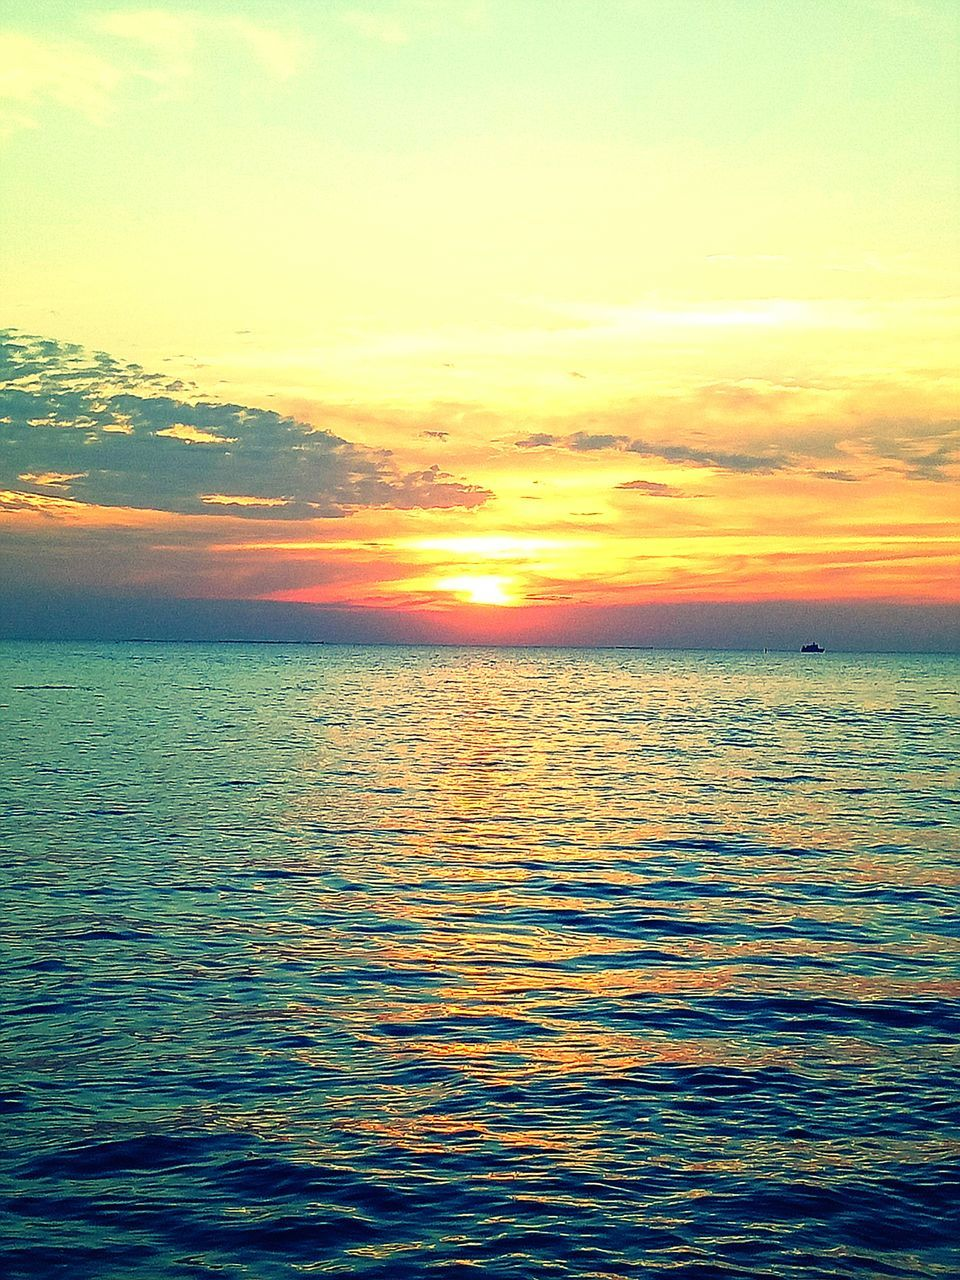 sea, sunset, beauty in nature, scenics, tranquil scene, tranquility, water, nature, idyllic, sky, horizon over water, rippled, no people, cloud - sky, outdoors, waterfront, sun, beach, vacations, day